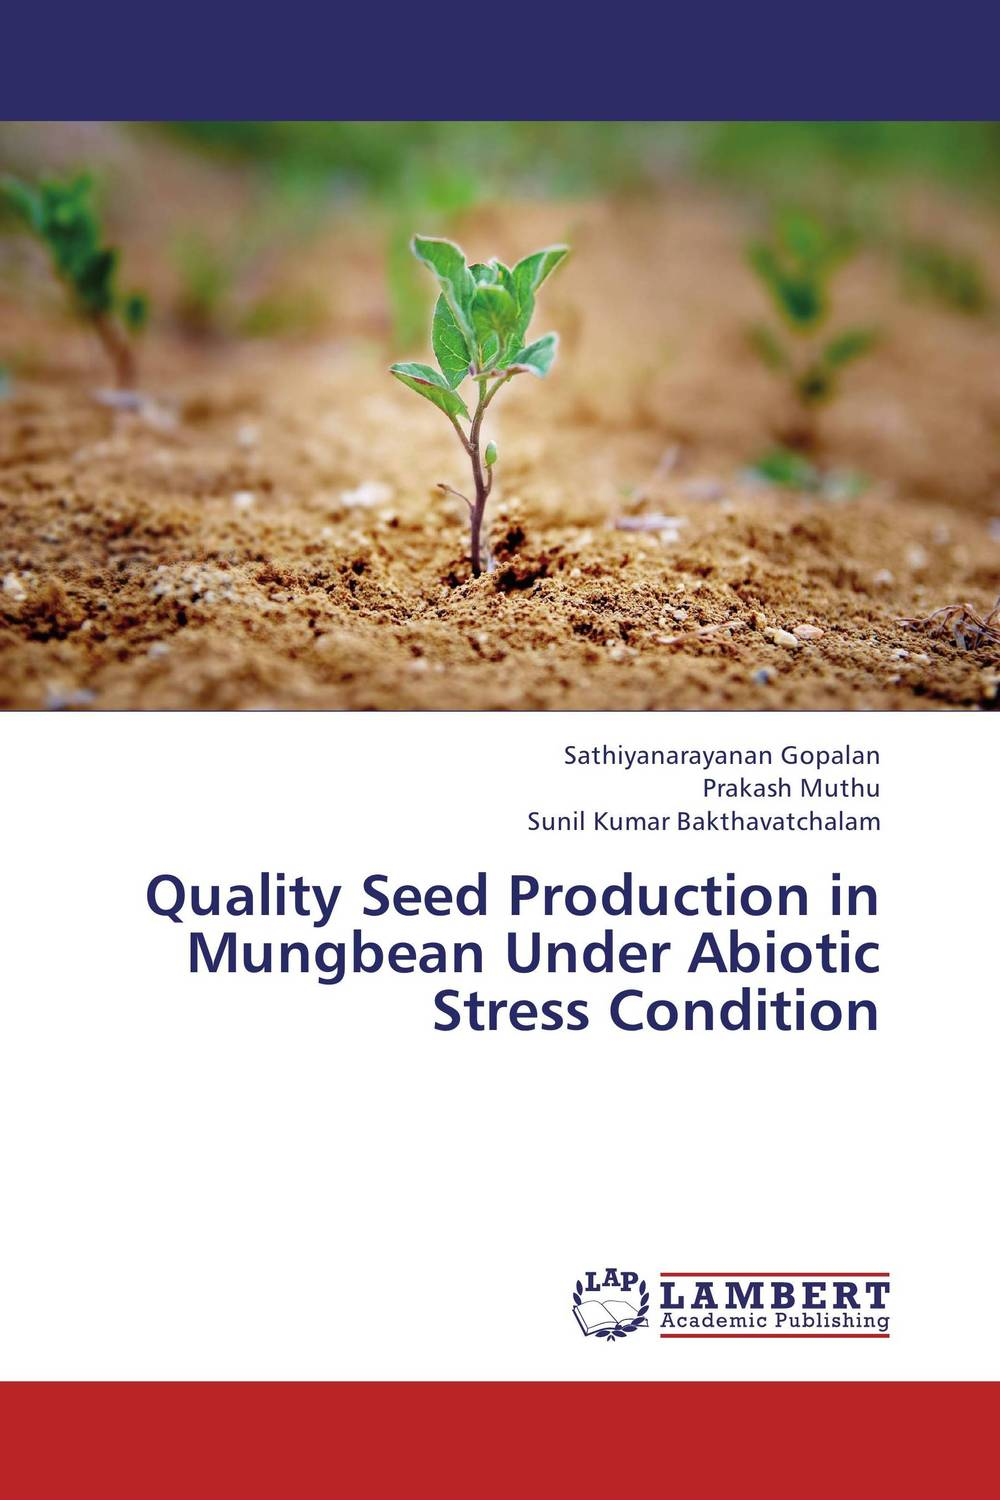 Quality Seed Production in Mungbean Under Abiotic Stress Condition mohd mazid and taqi ahmed khan interaction between auxin and vigna radiata l under cadmium stress